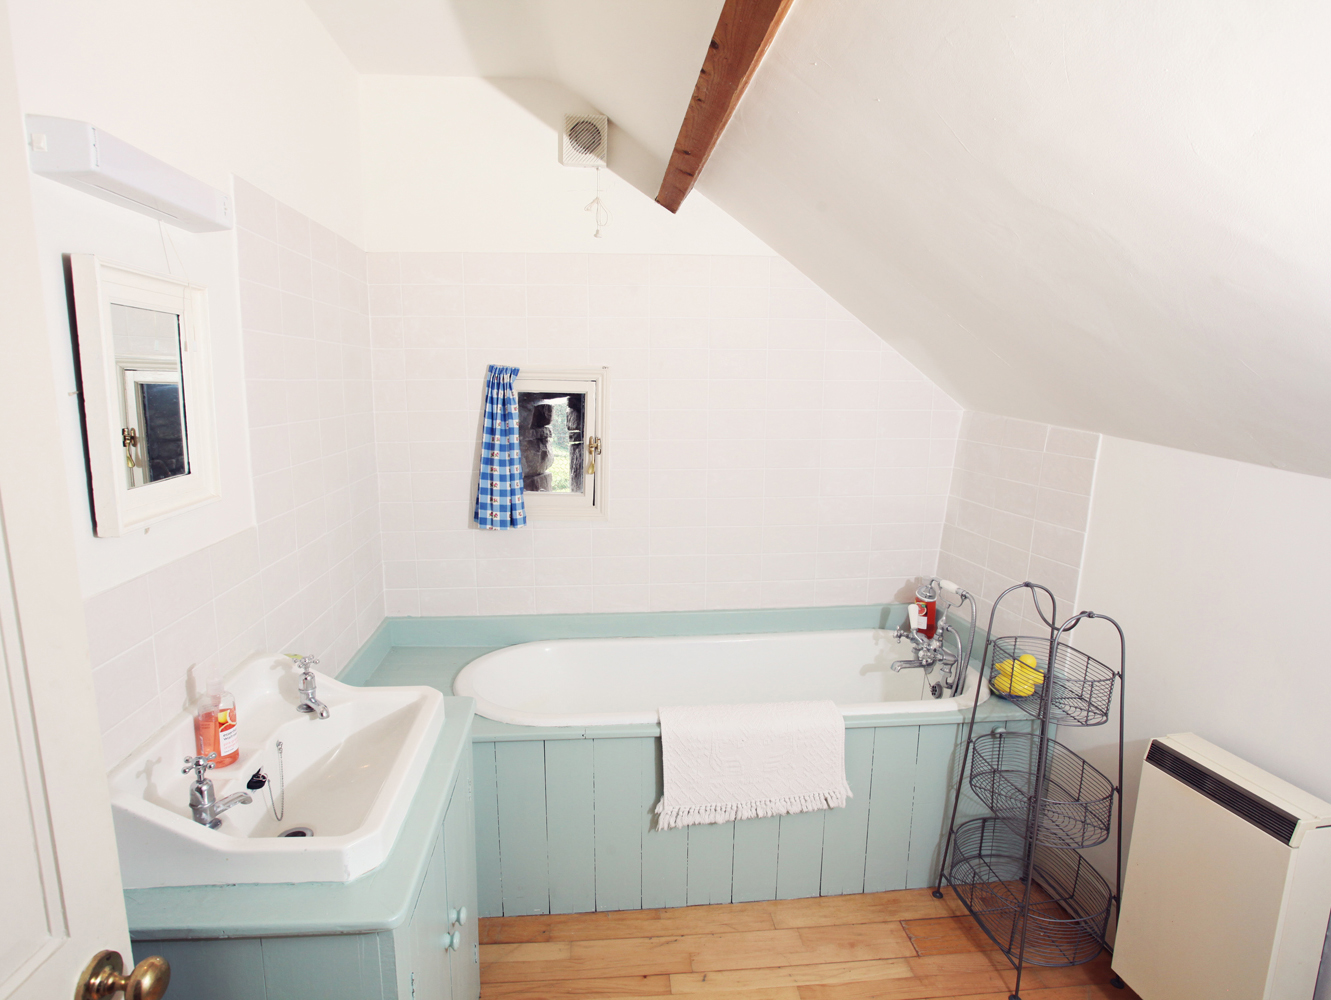 2 Bedroom Cottage in Crickhowell, Mid Wales